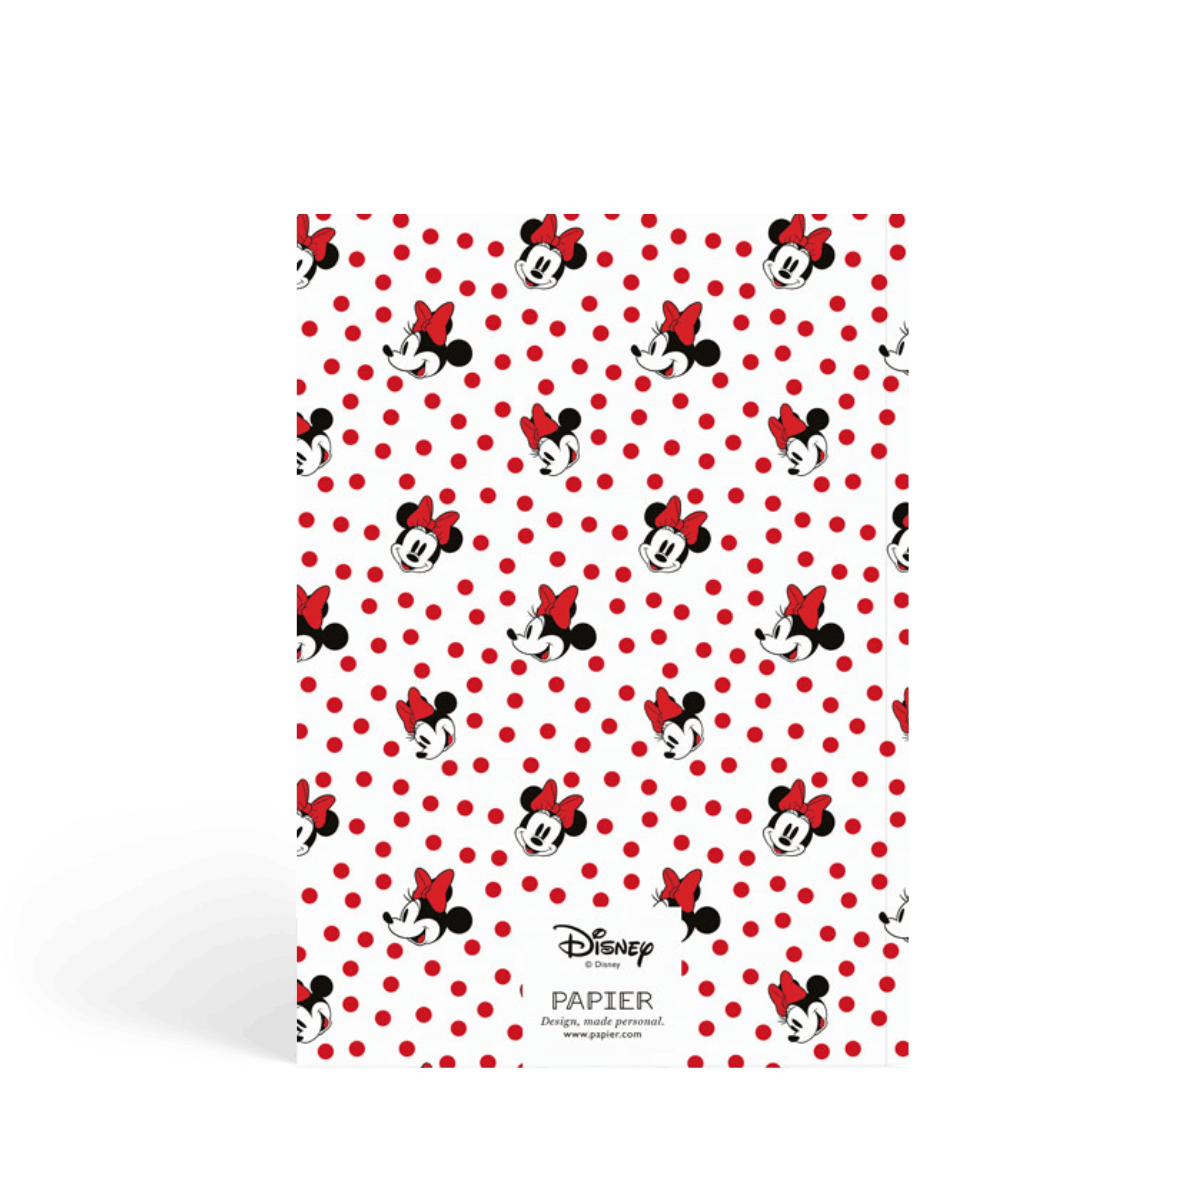 Https%3a%2f%2fwww.papier.com%2fproduct image%2f56023%2f5%2fminnie mouse 13460 back 1542369383.png?ixlib=rb 1.1